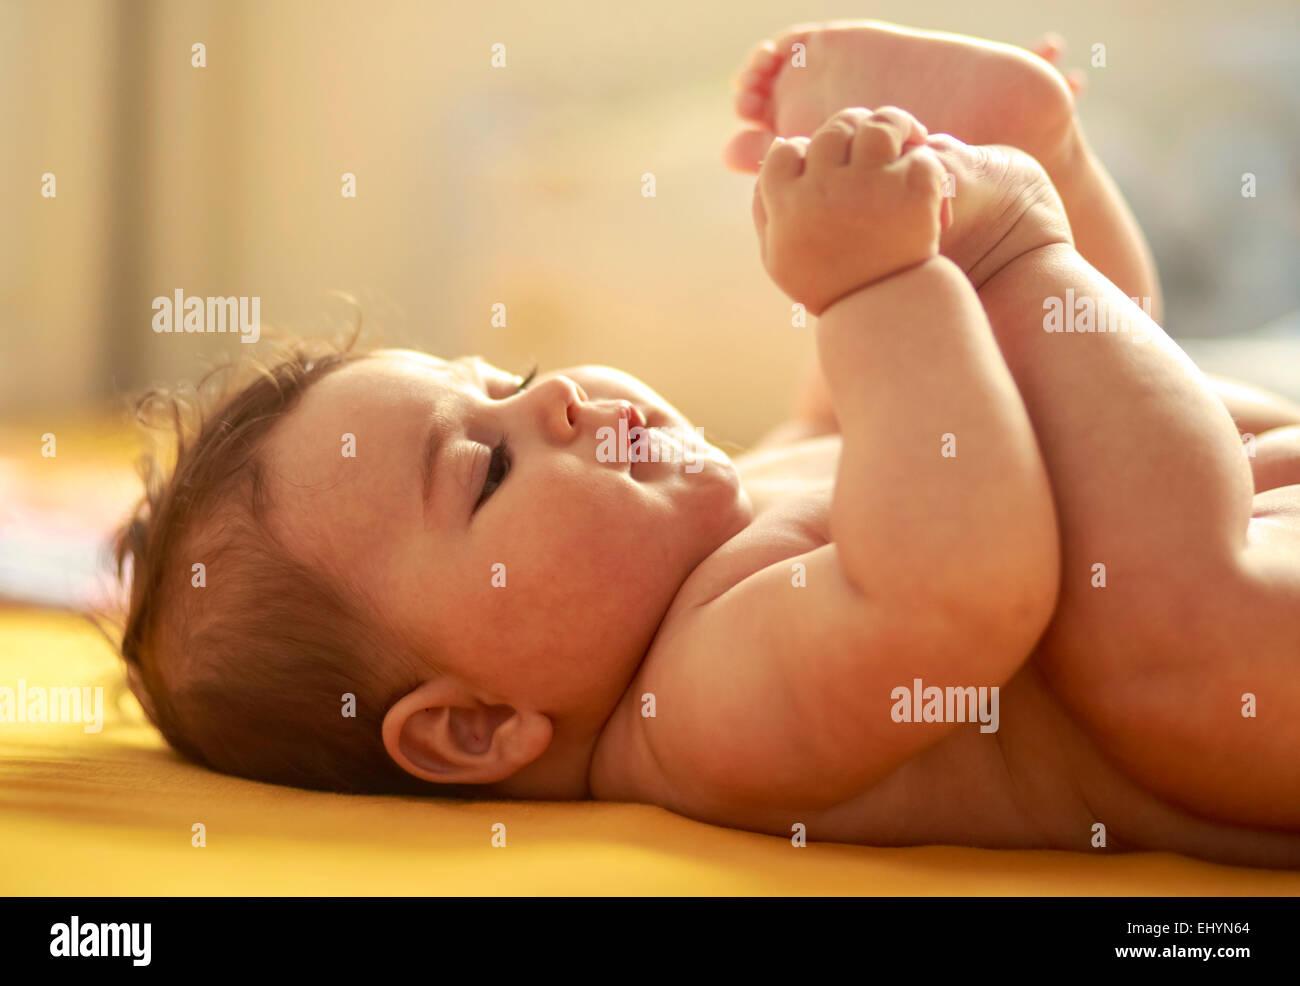 Baby boy playing with feet - Stock Image